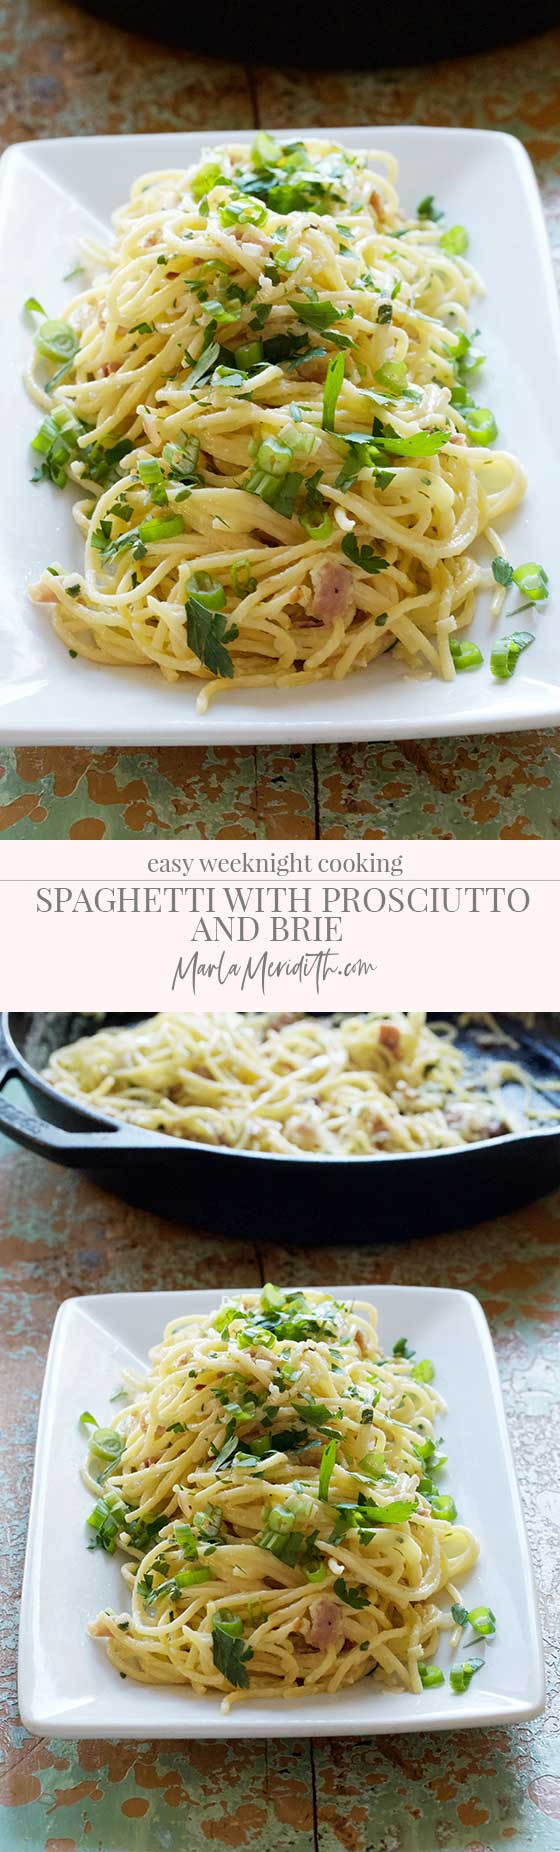 Spaghetti with Prosciutto and Brie recipe, a delicious comfort food dish that is simple and quick to prepare. Perfect for cold winter weeknight meals. MarlaMeridith.com